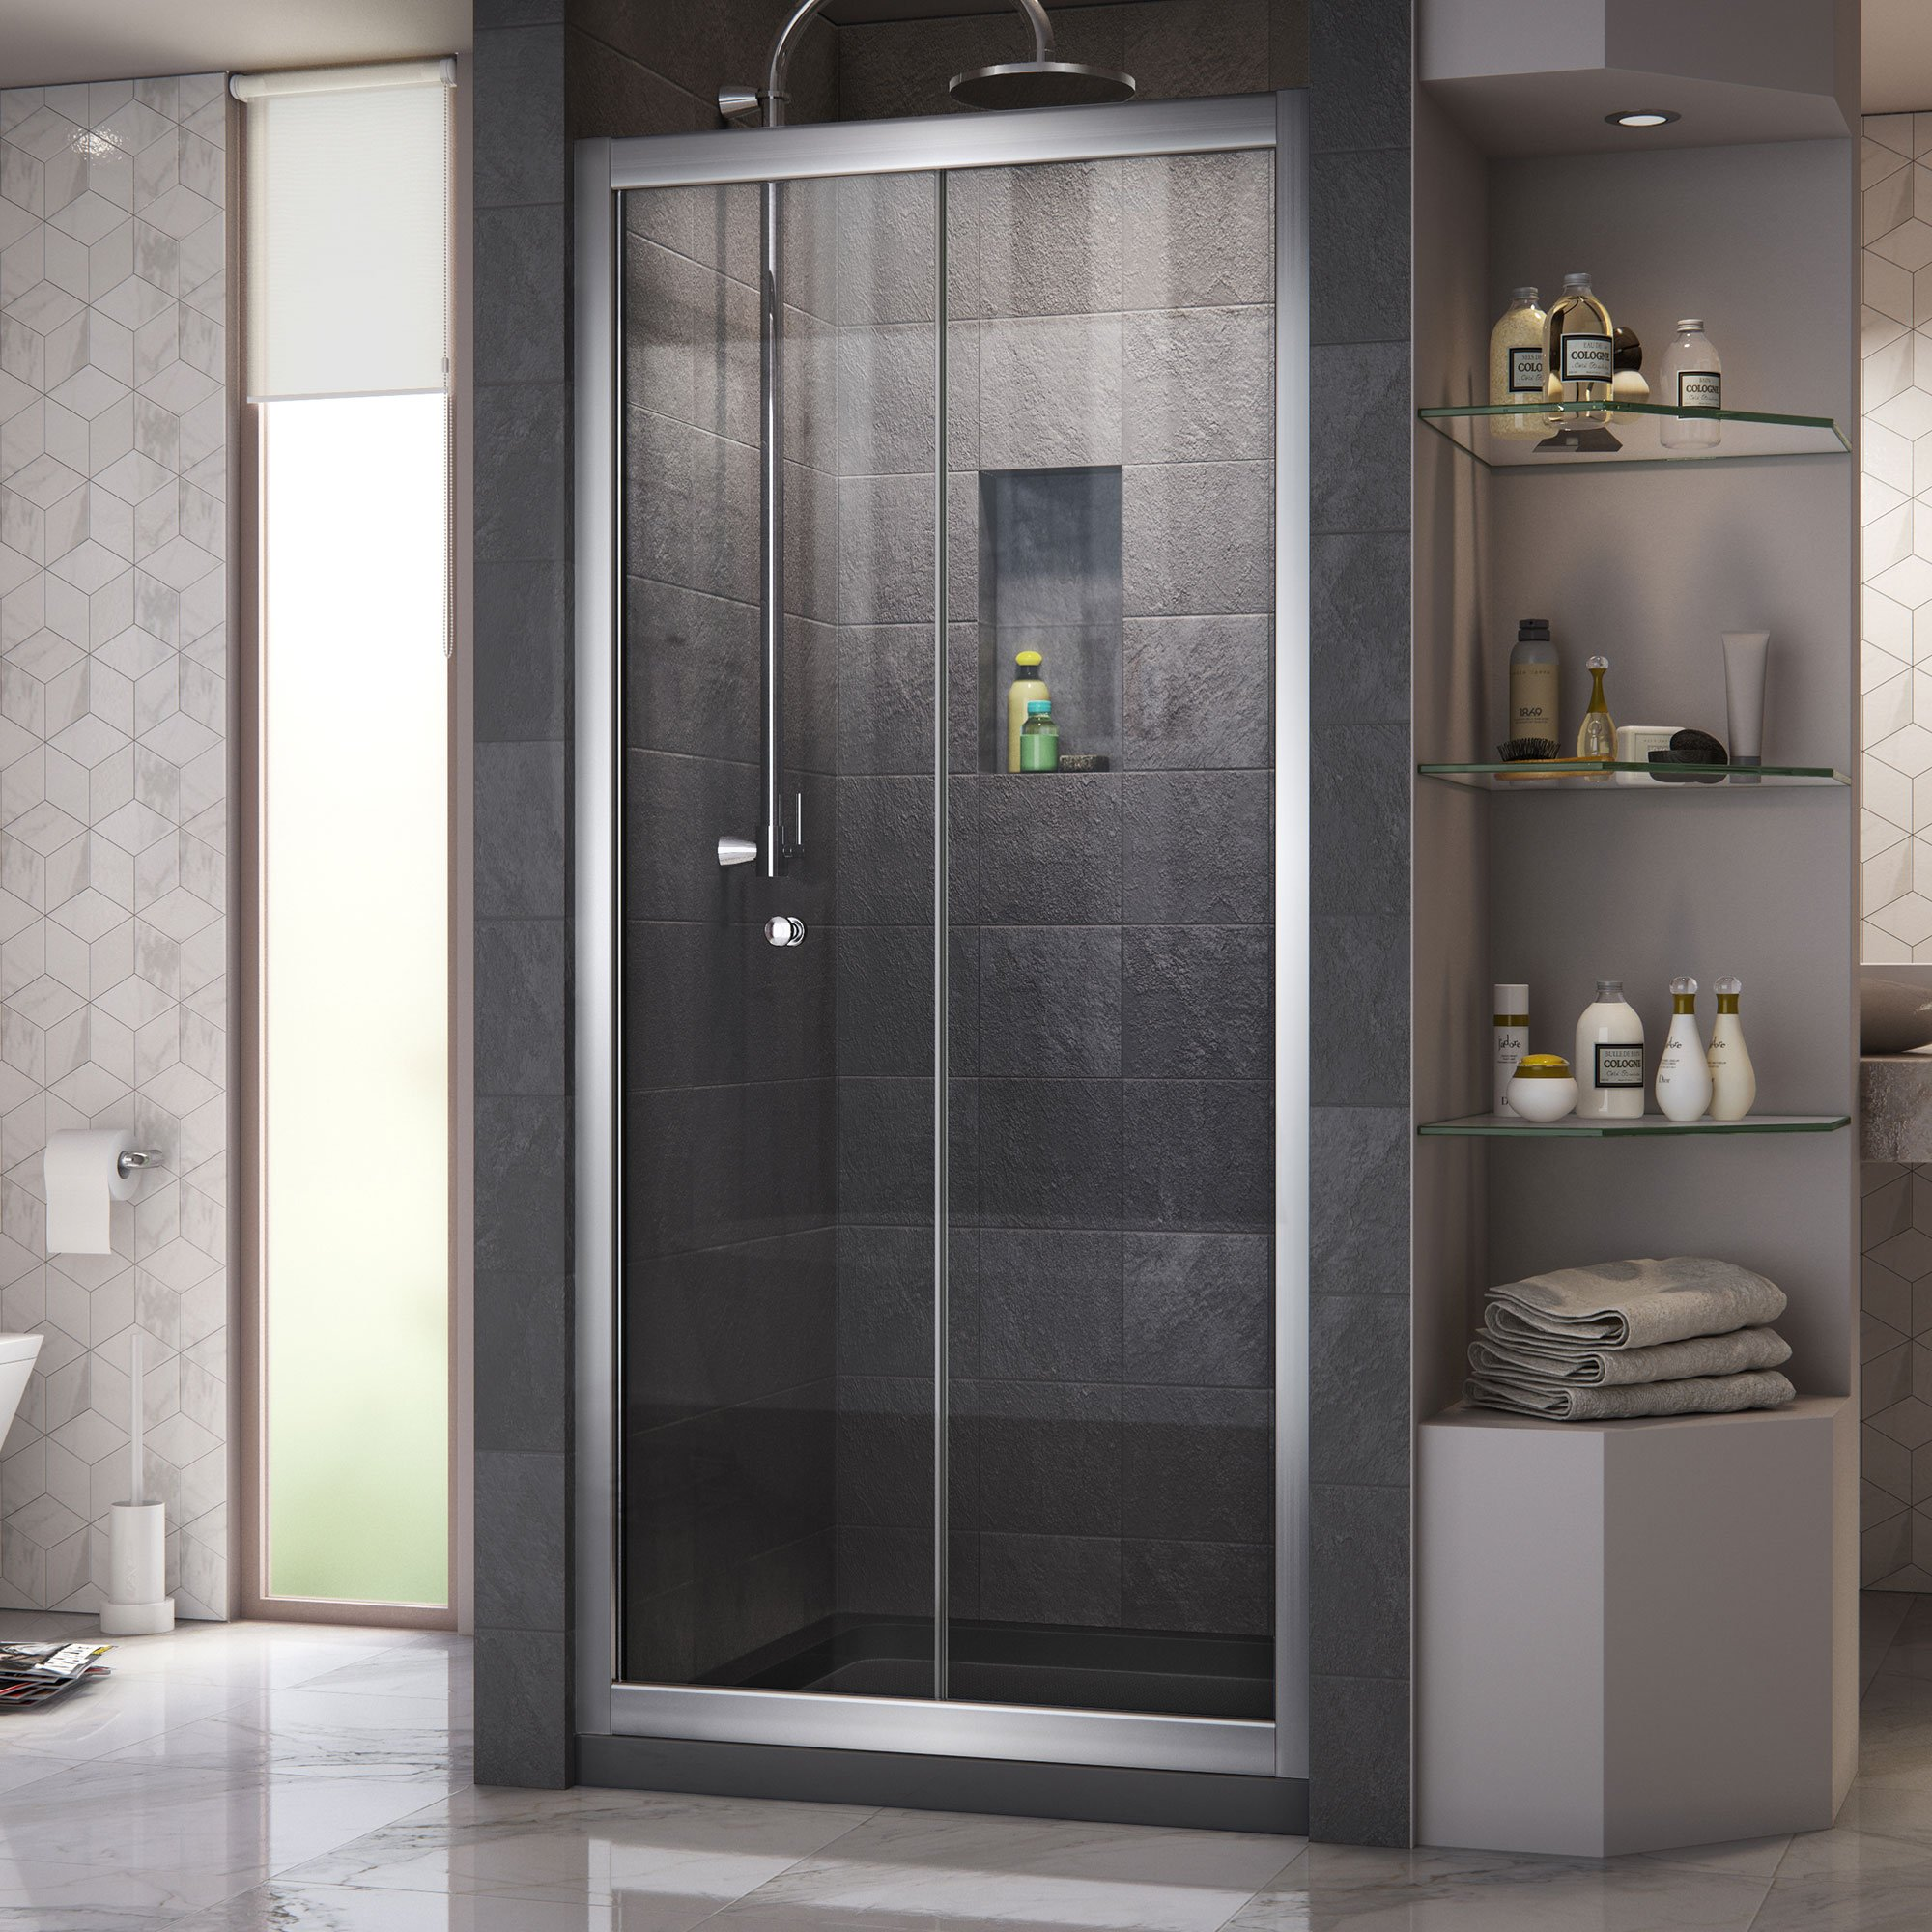 DreamLine Butterfly 34-35 1/2 in. Width, Frameless Bi-Fold Shower Door, 1/4'' Glass, Chrome Finish by DreamLine